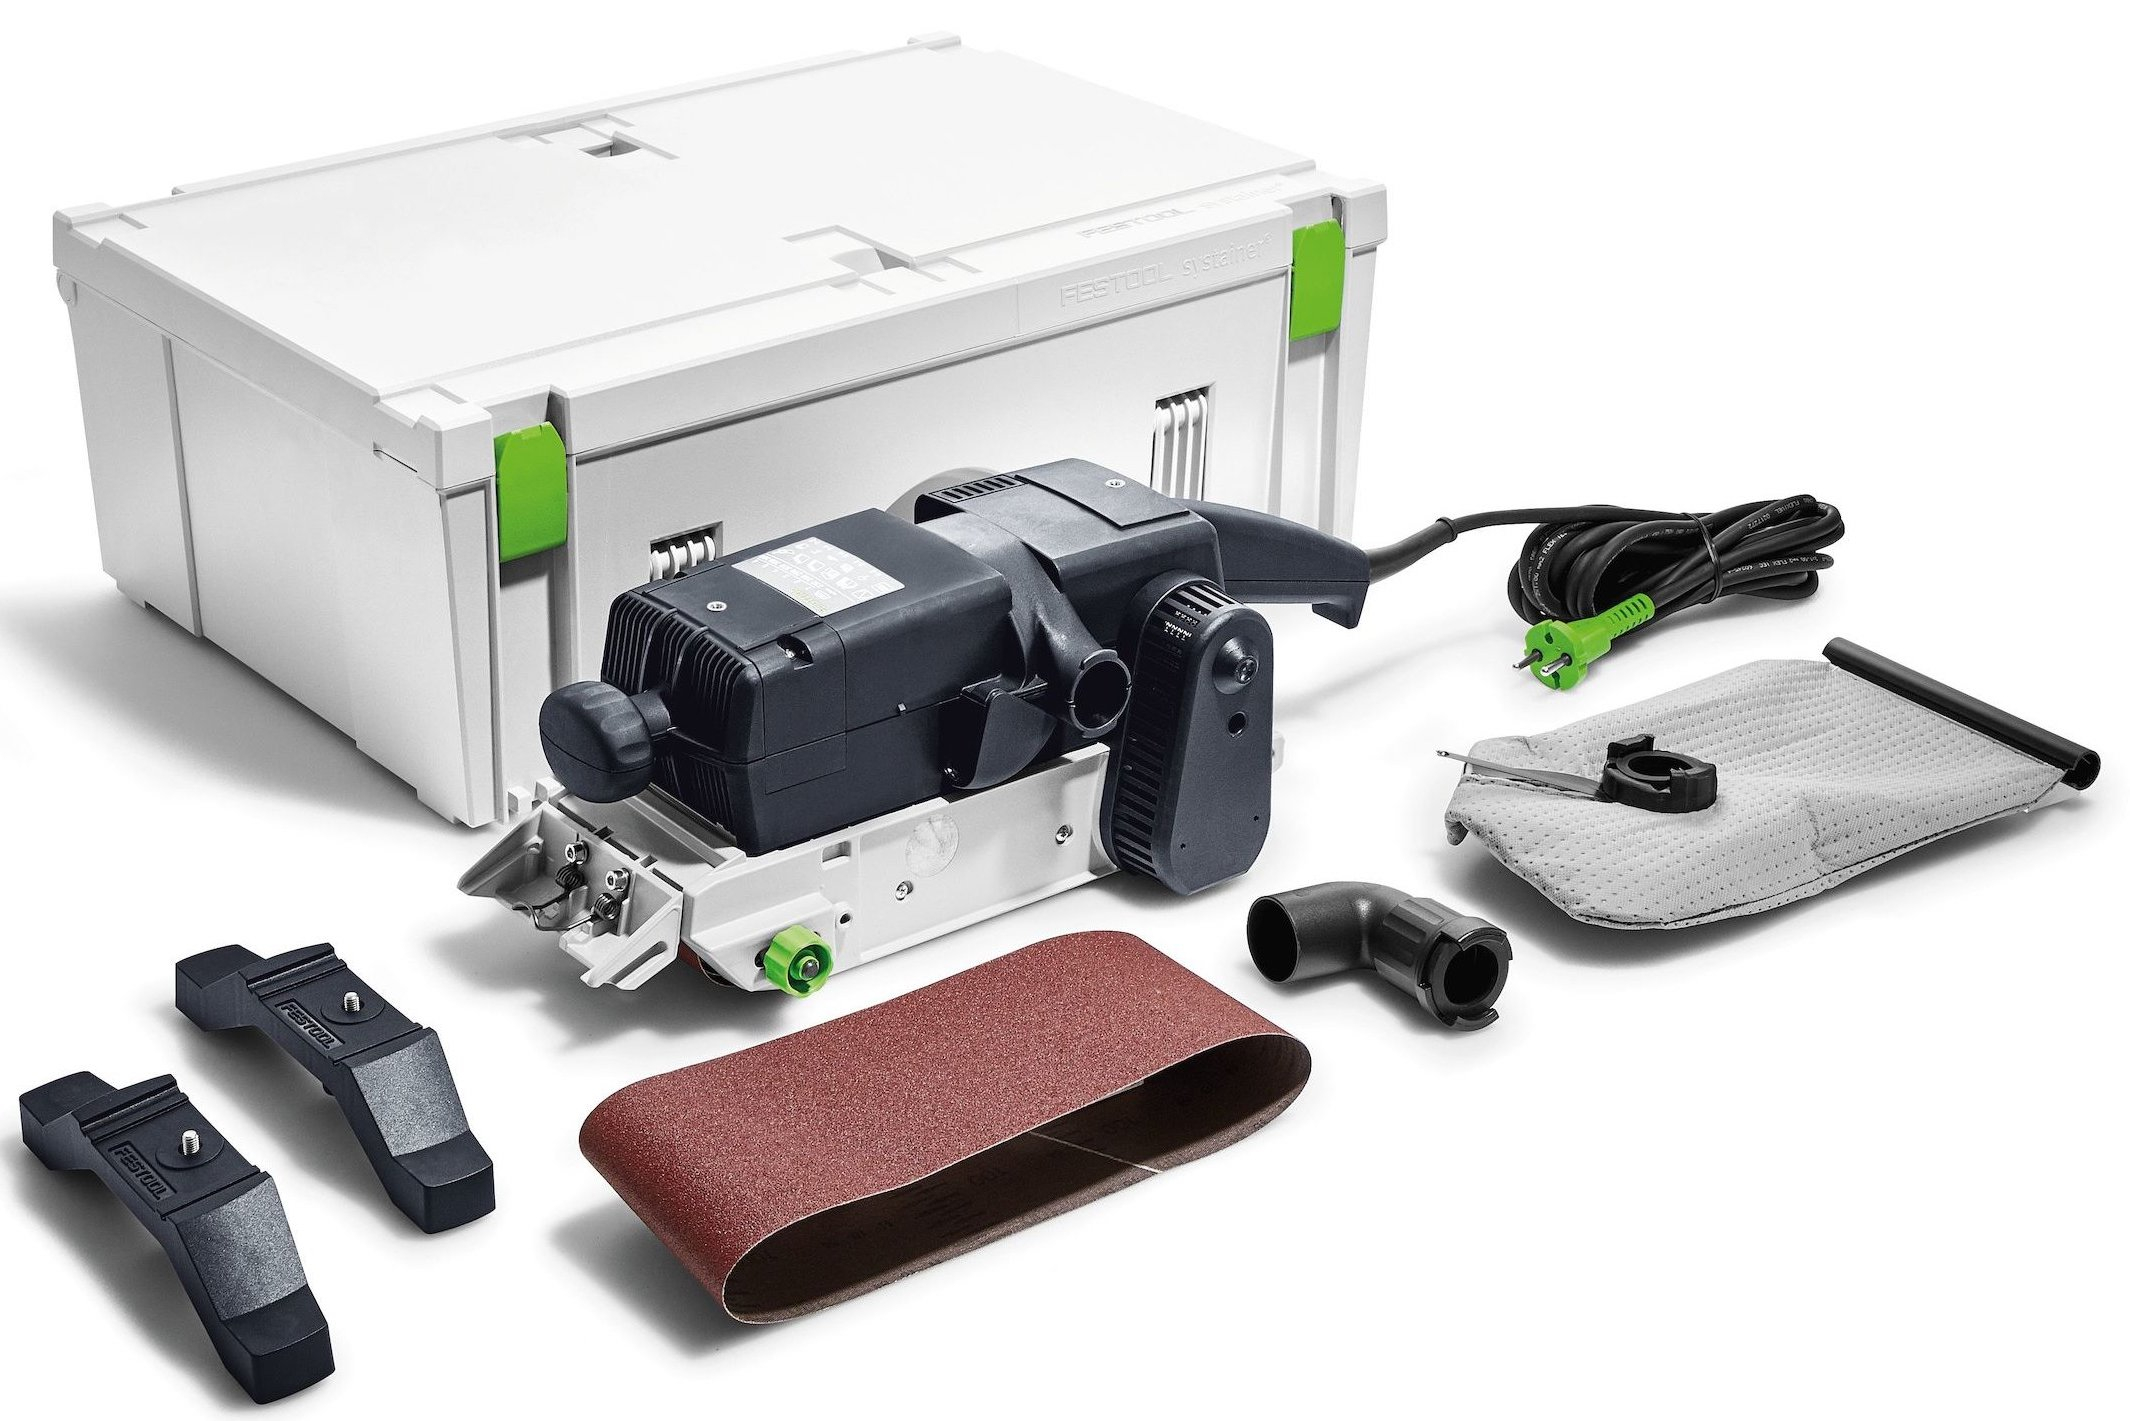 Festool Bandschuurmachine Bs105 E-Plus